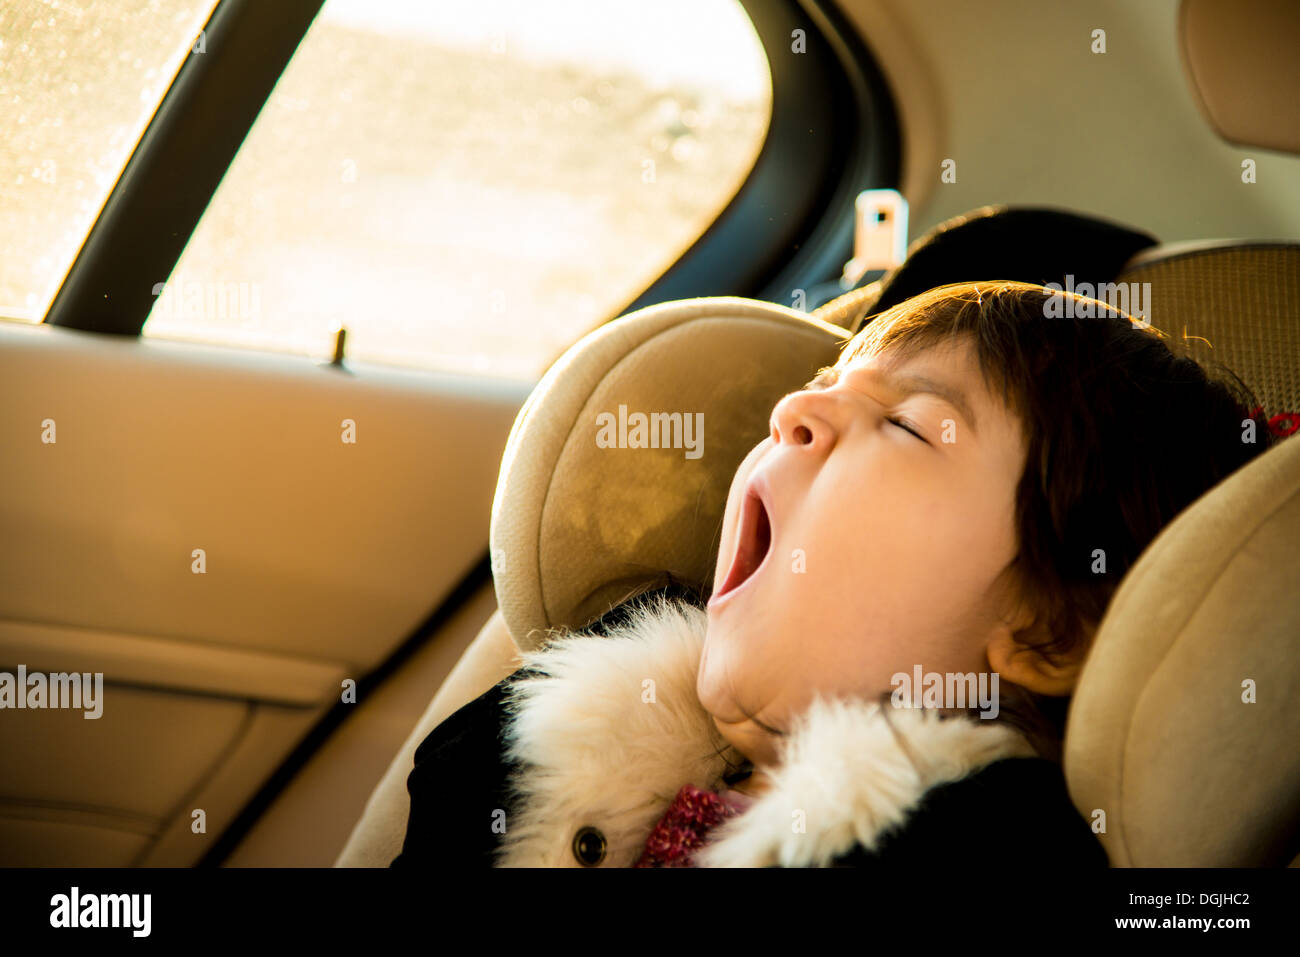 Young girl with eyes closed yawning in car Stock Photo